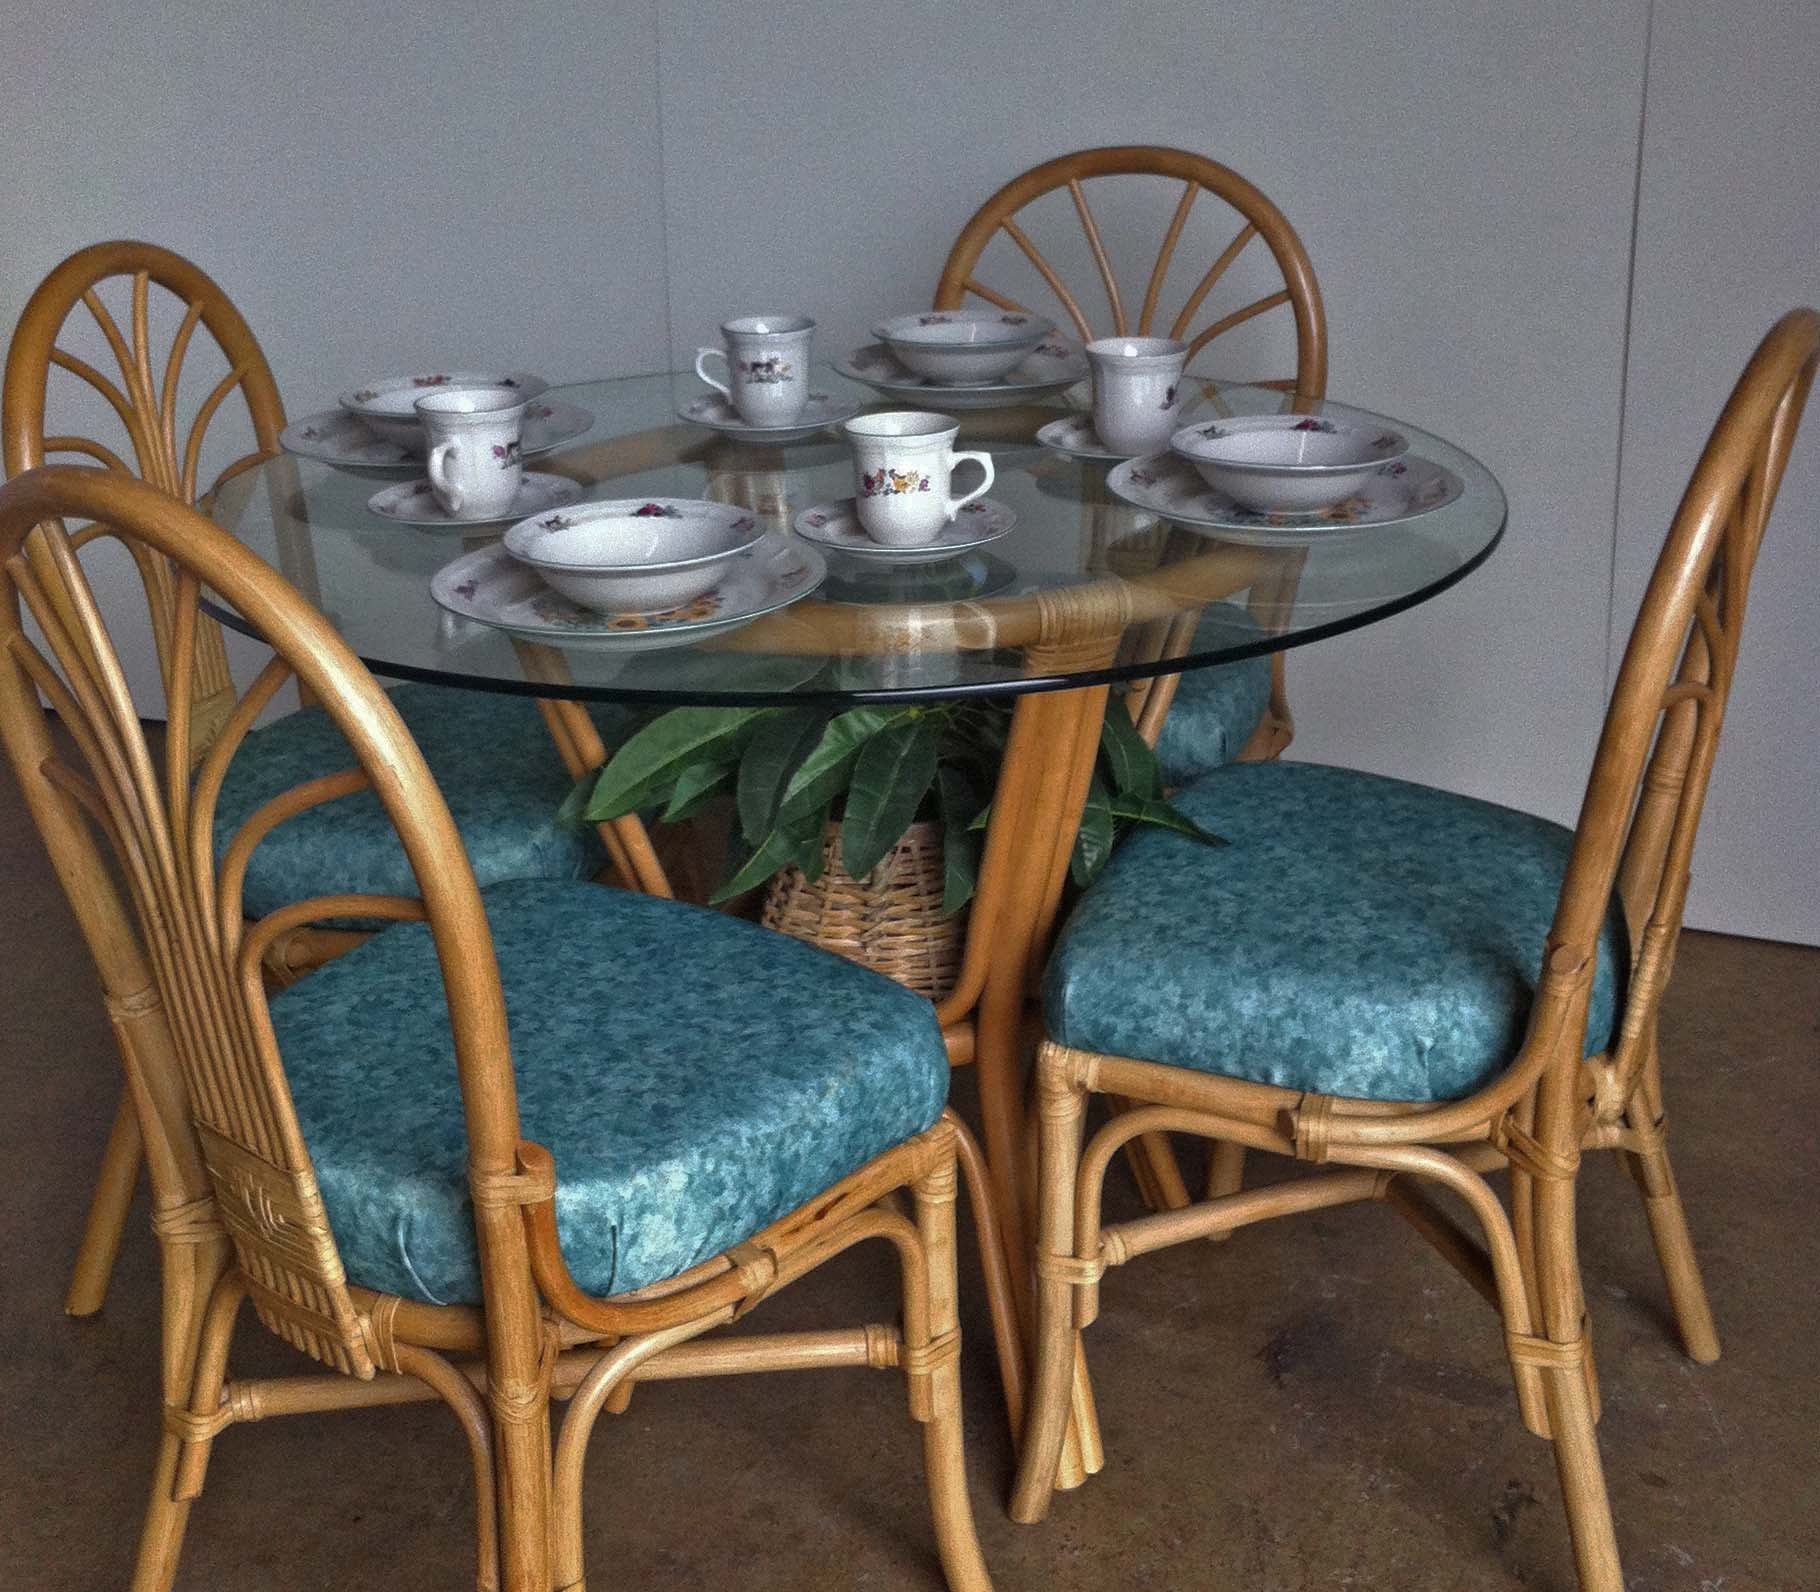 Rattan Dining Table With 4 Chairs